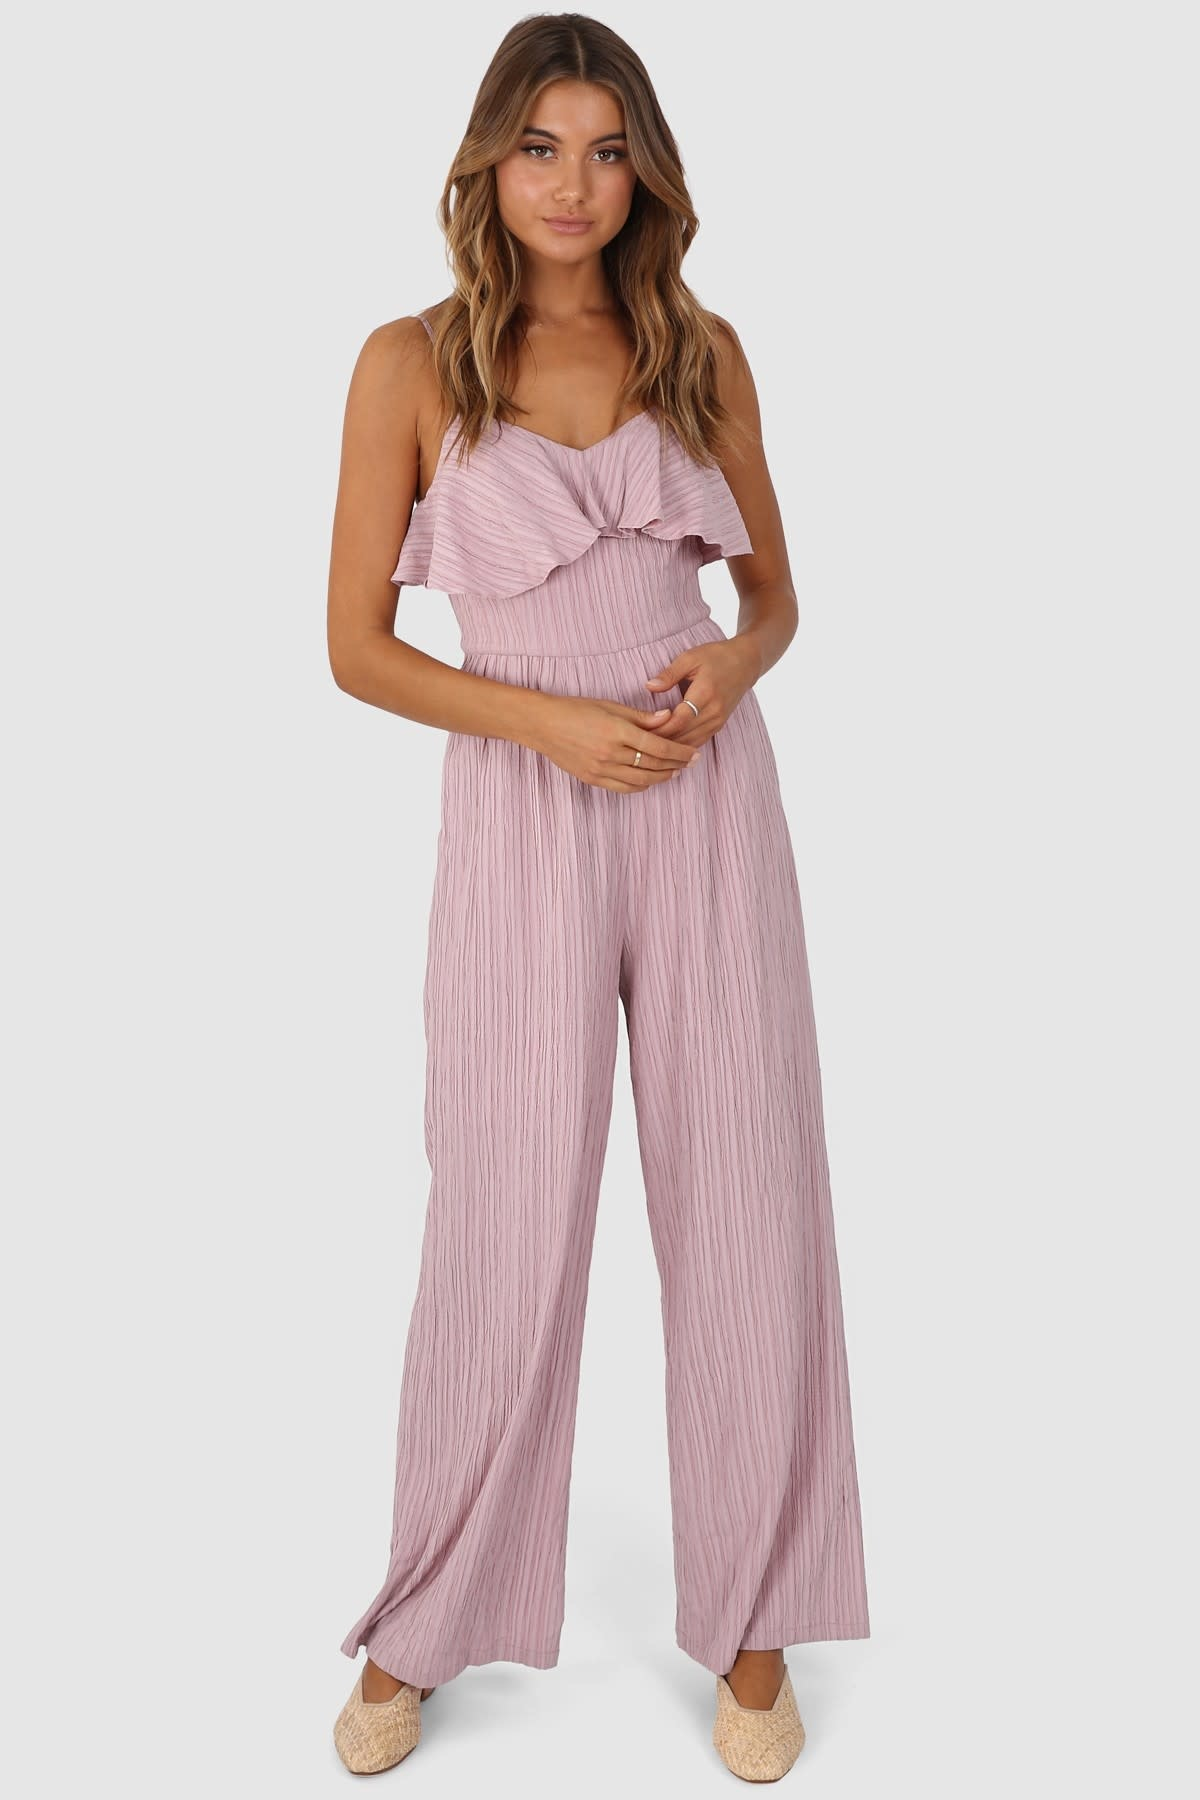 "LOST IN LUNAR LOST IN LUNAR L0203 ""TAHNEE"" Pant Suit"